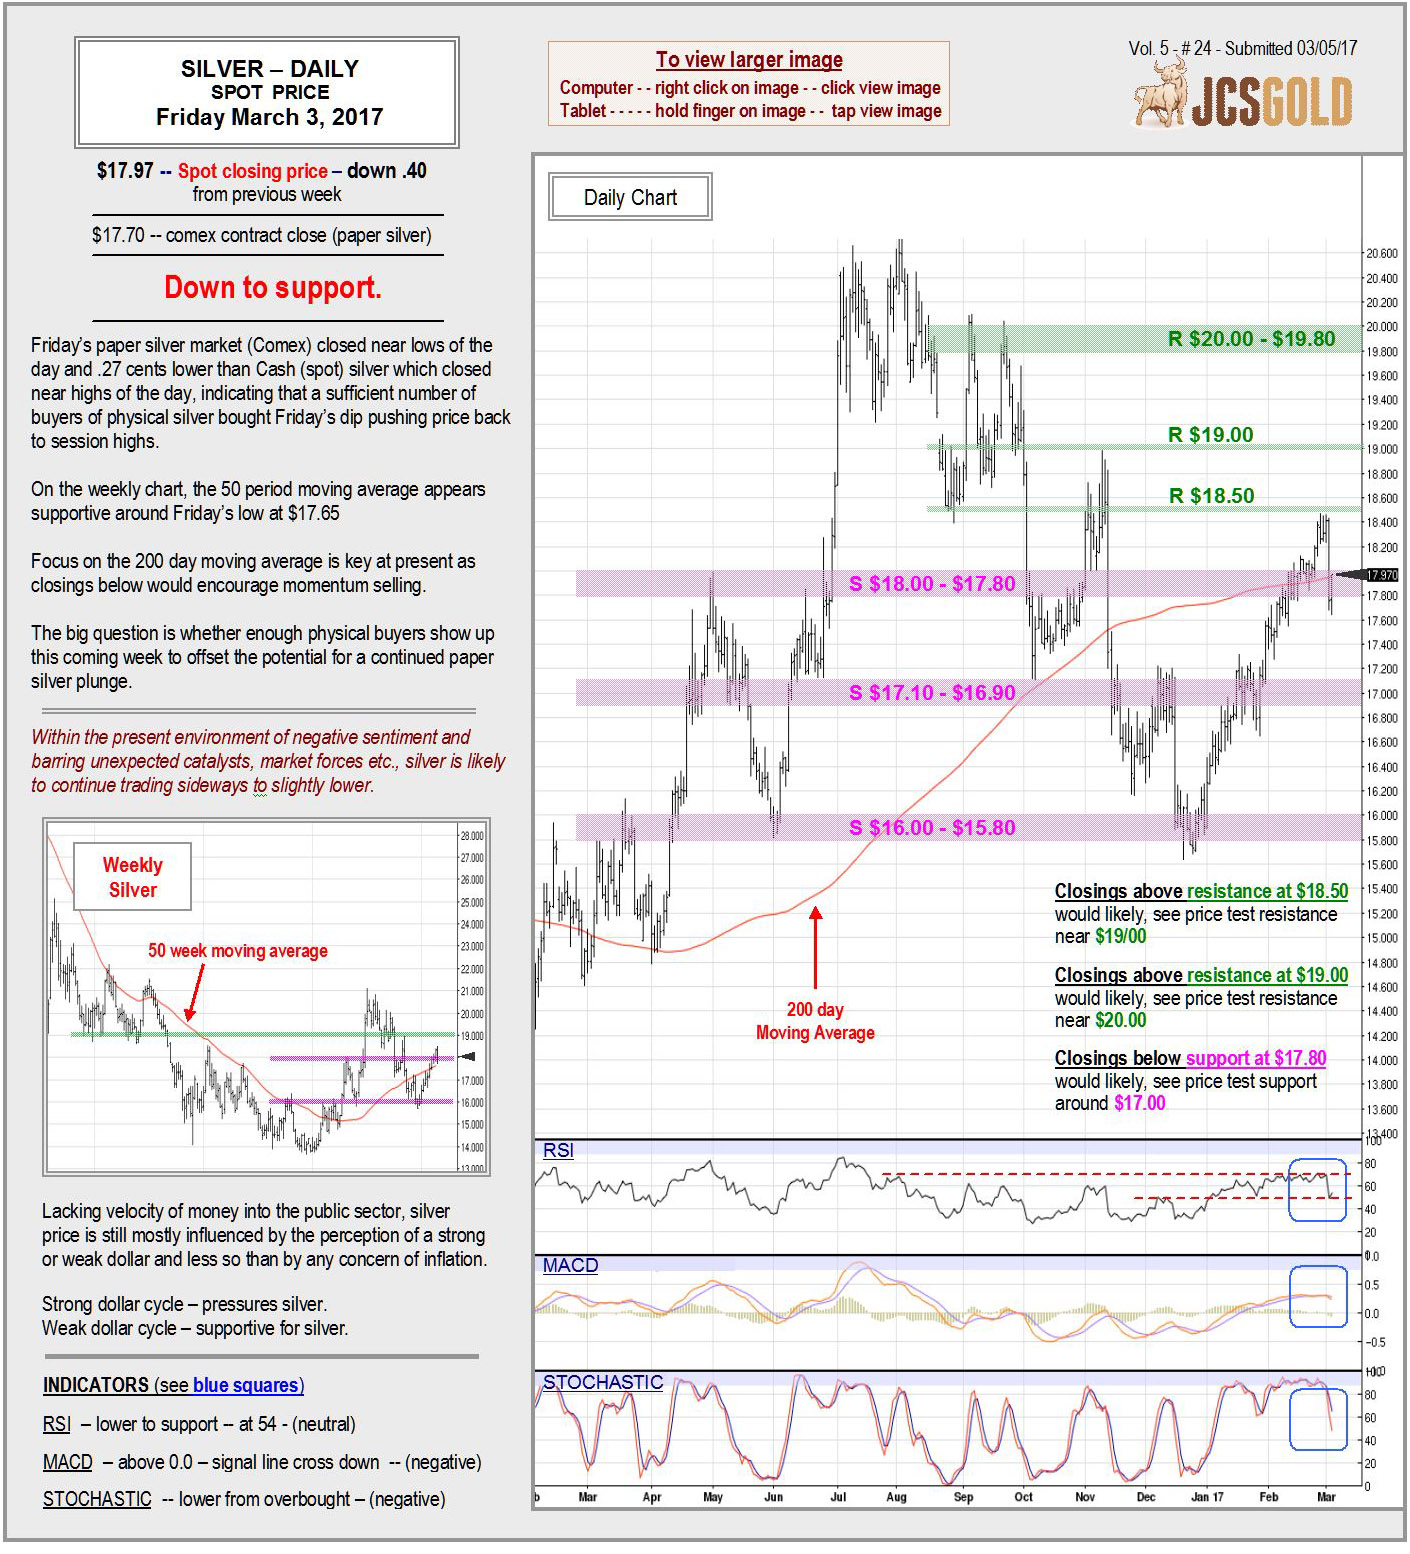 March 3, 2017 chart & commentary